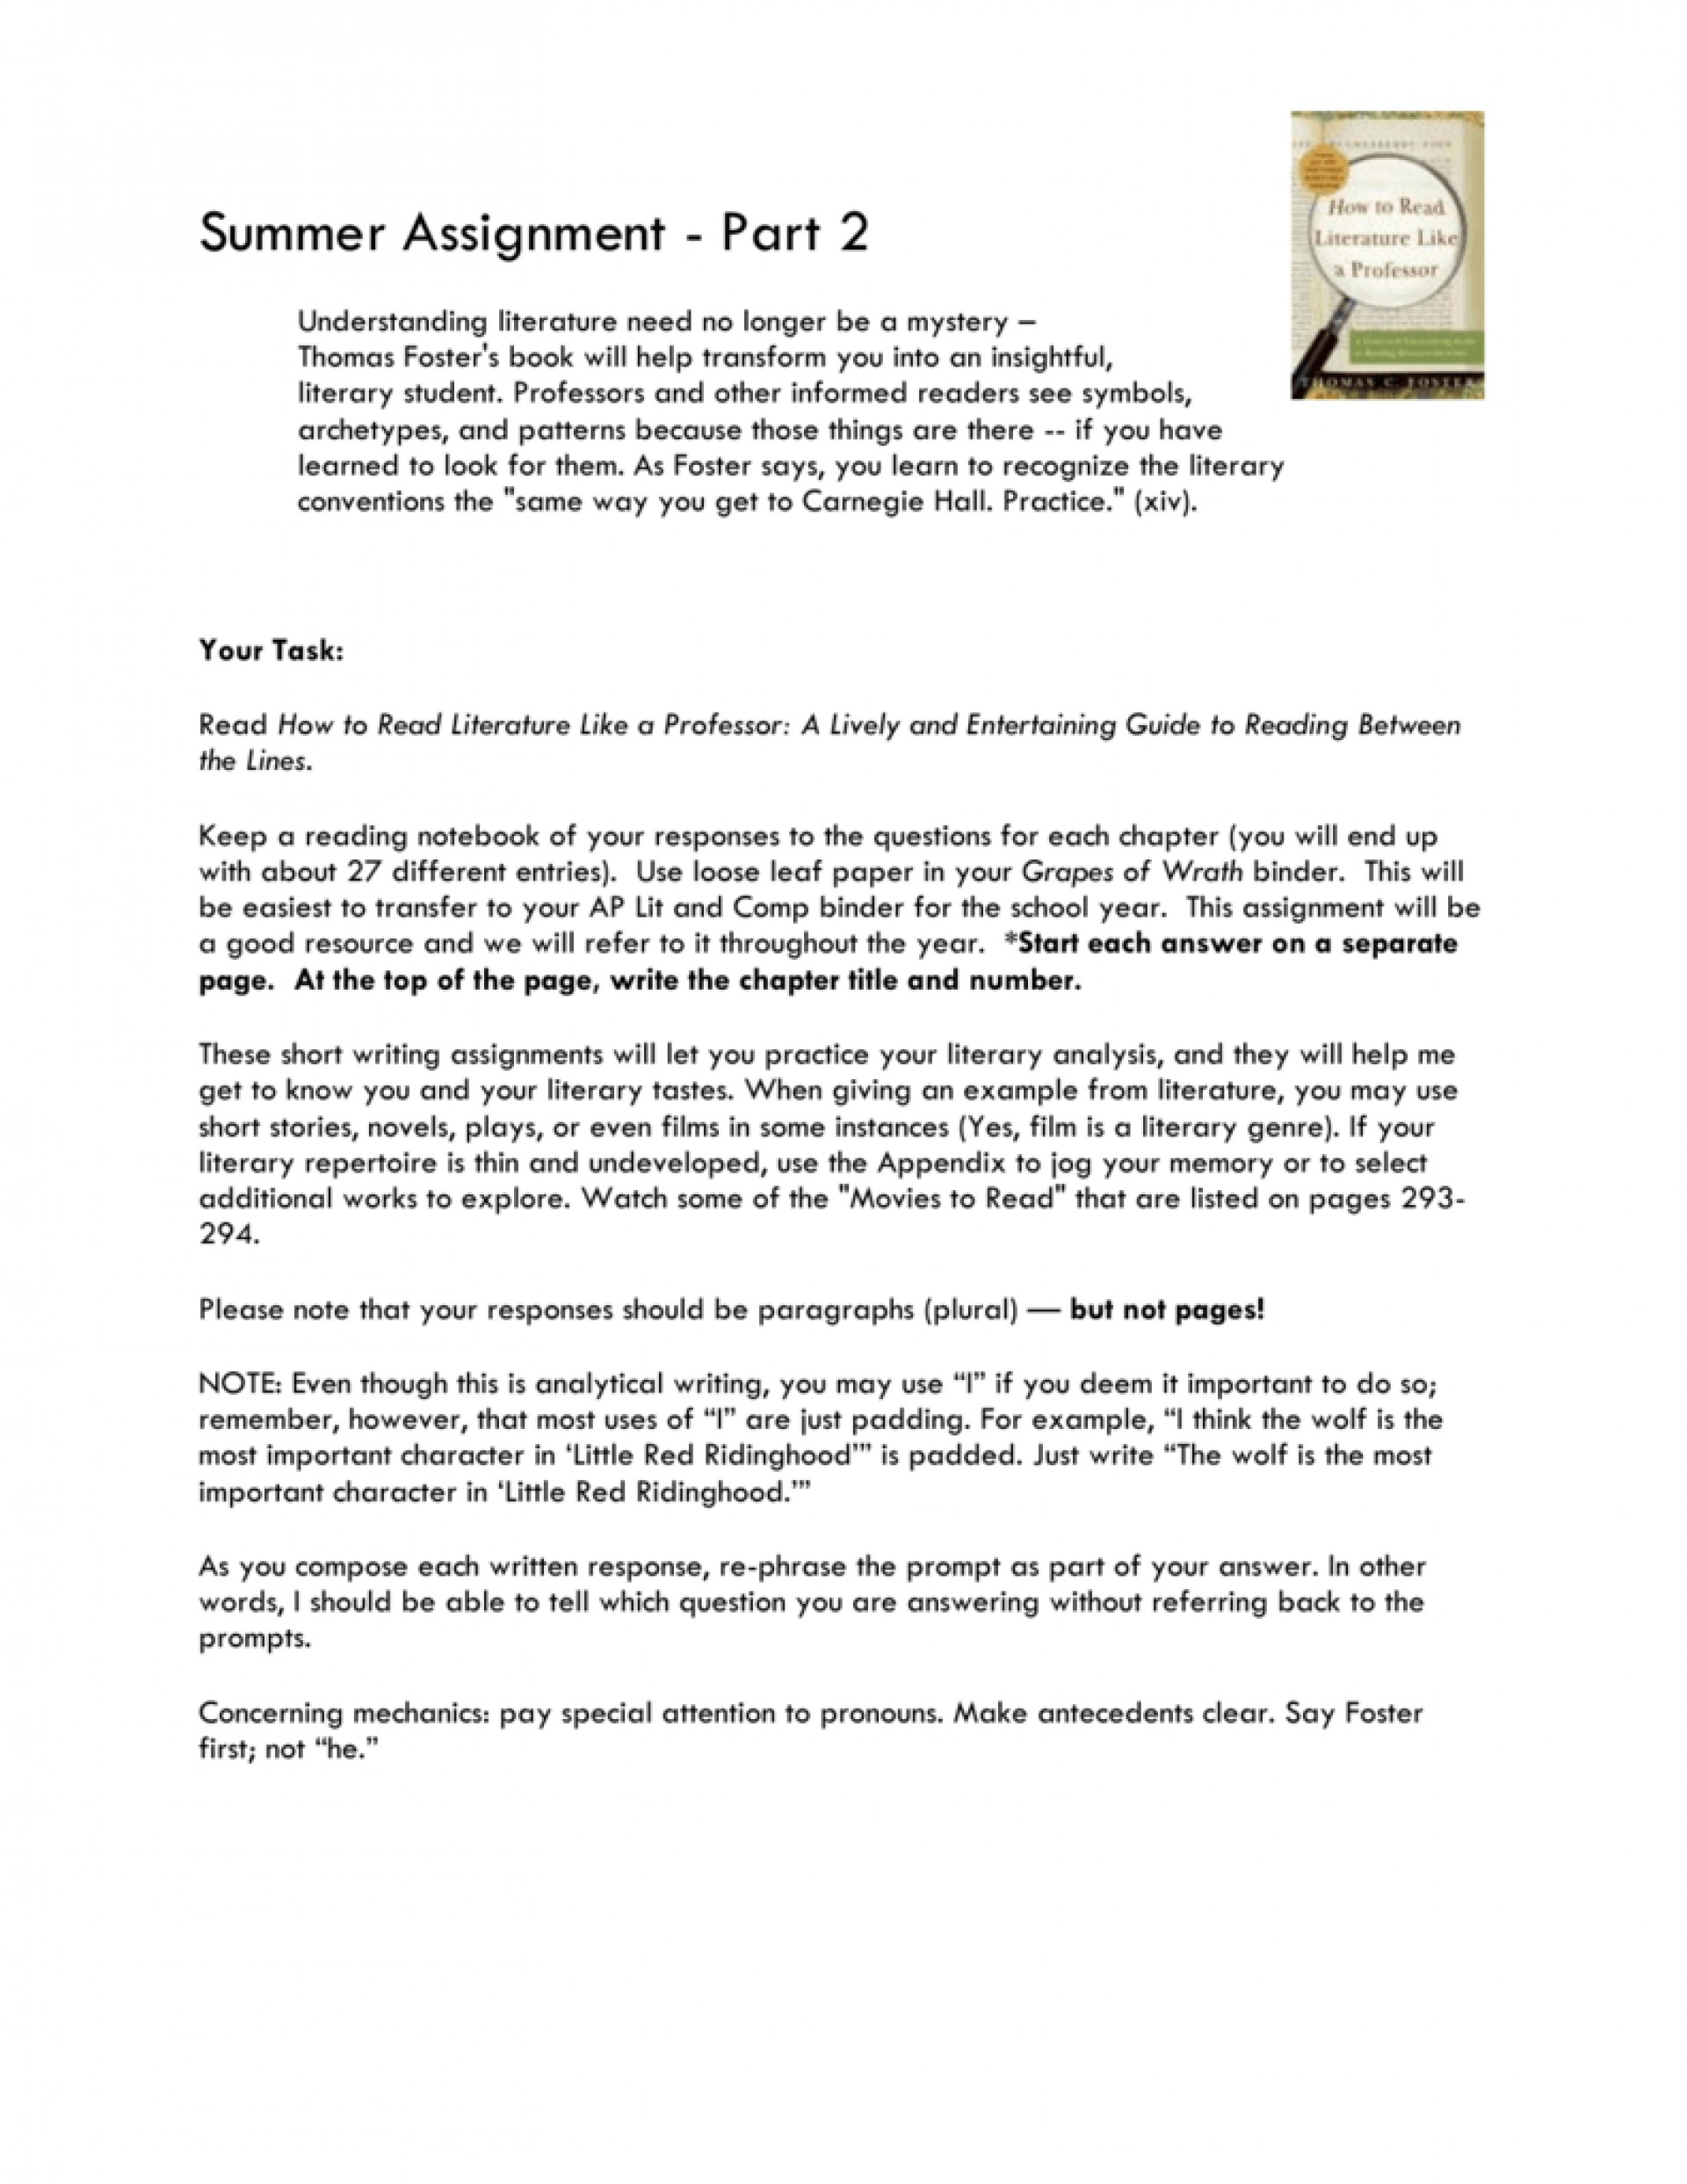 006 Essay Example Professor How To Read Lit Like 008059138 1 Amazing Teaching College Writing On My In French 1920